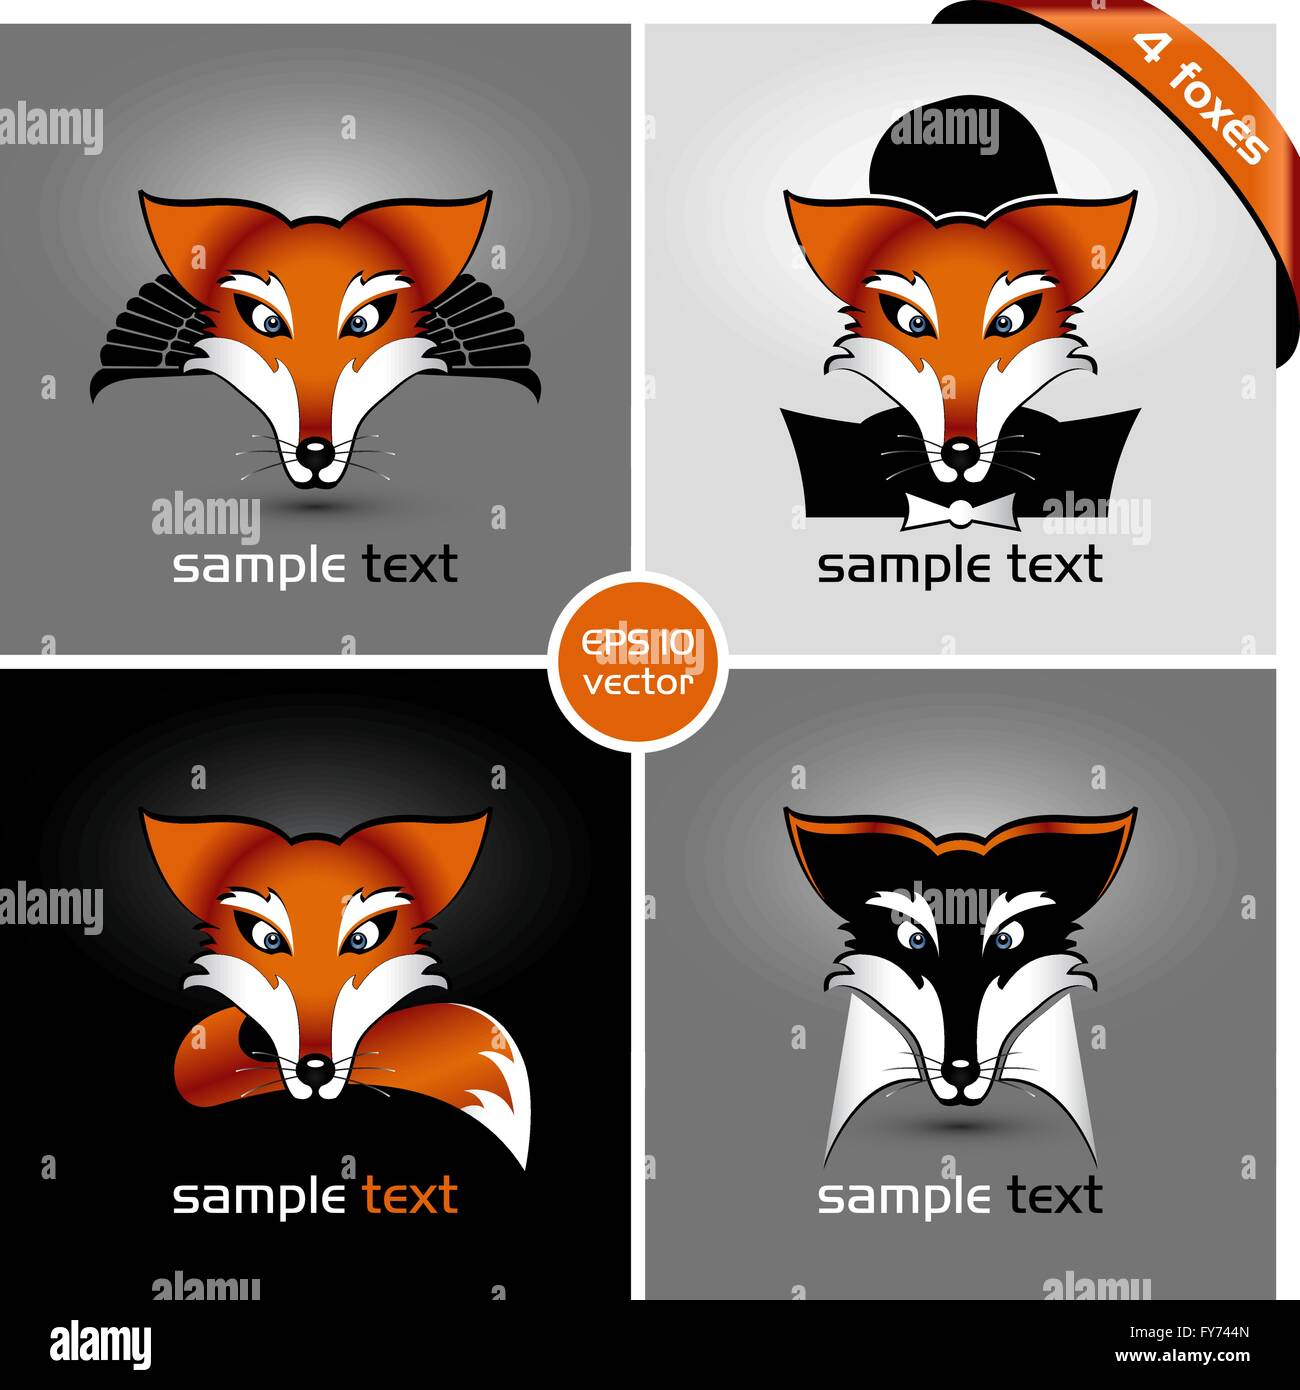 vector drawing of heads of four foxes, eps 10, the drop shadow contains transparencies - Stock Image